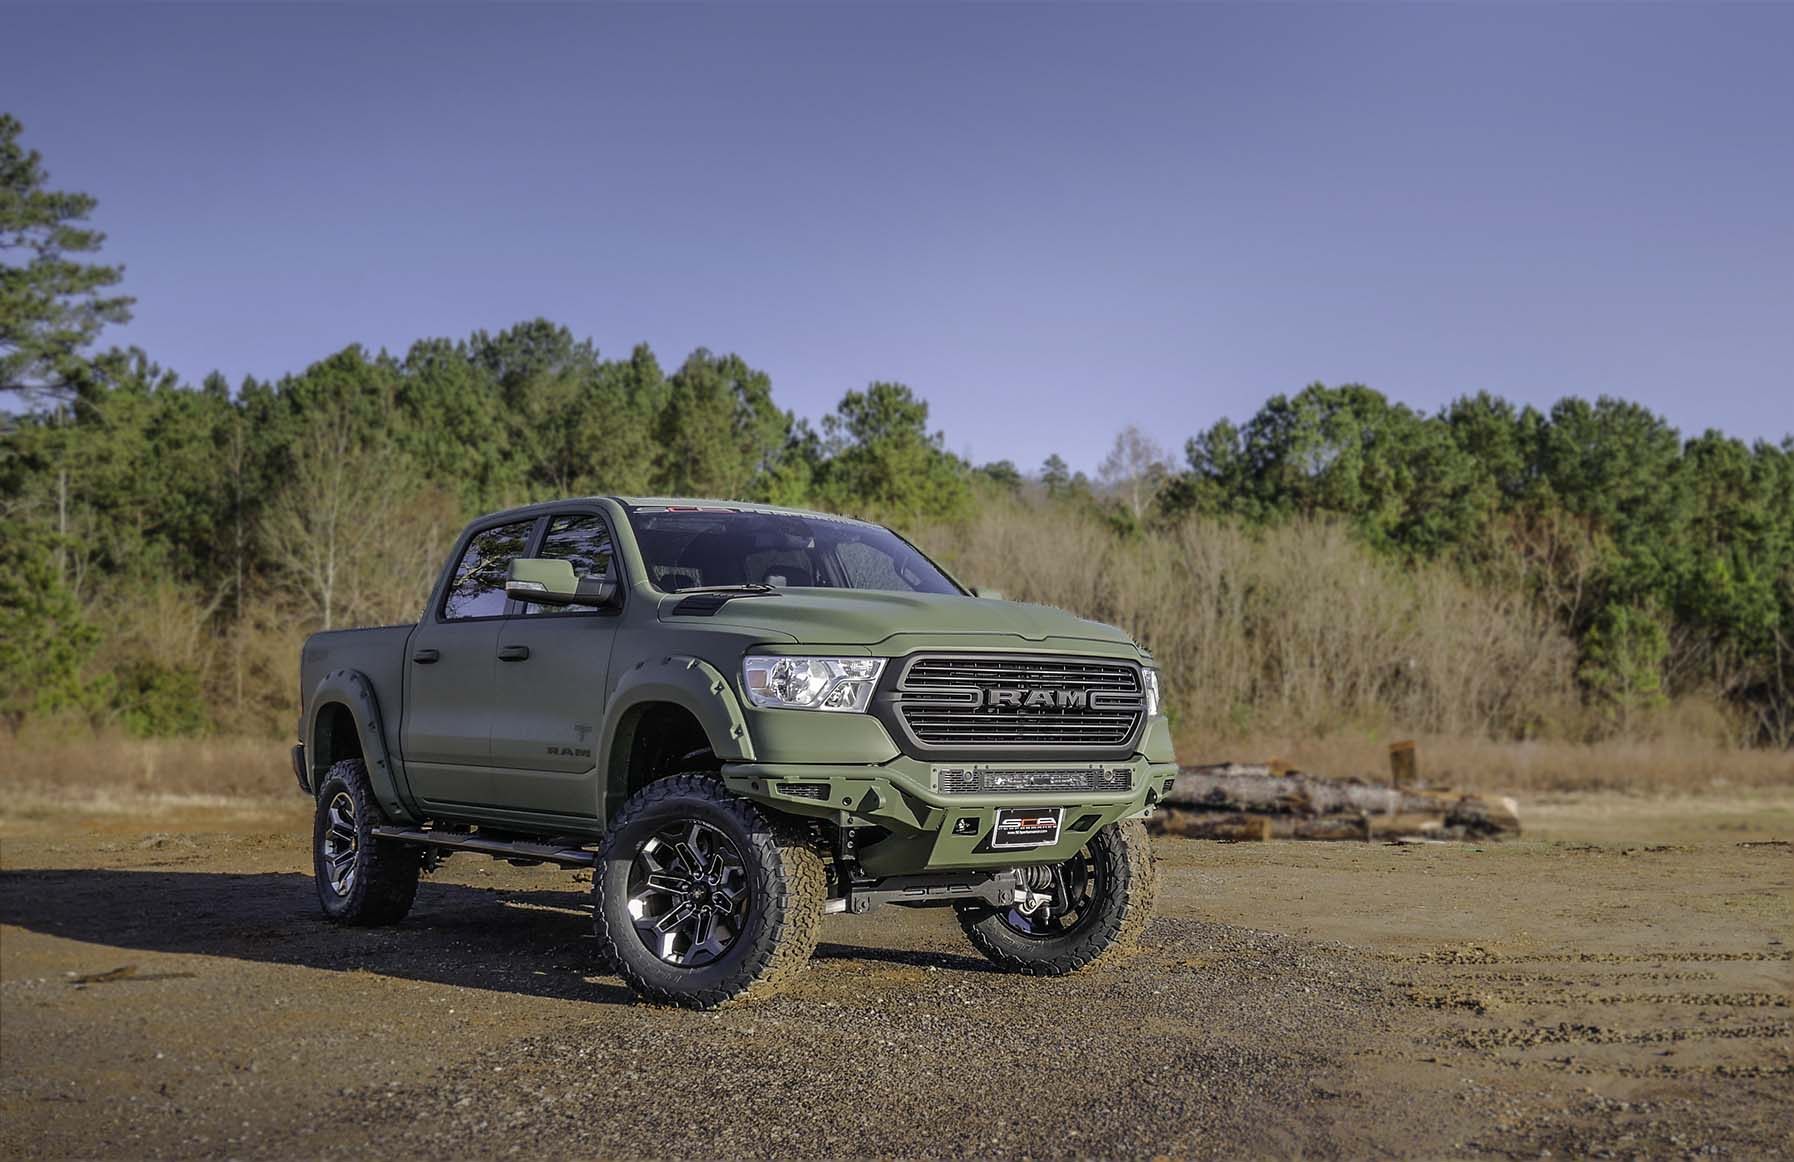 2019 RAM AFBW OD Green with Color Matched Bumper Blurred Background.jpg